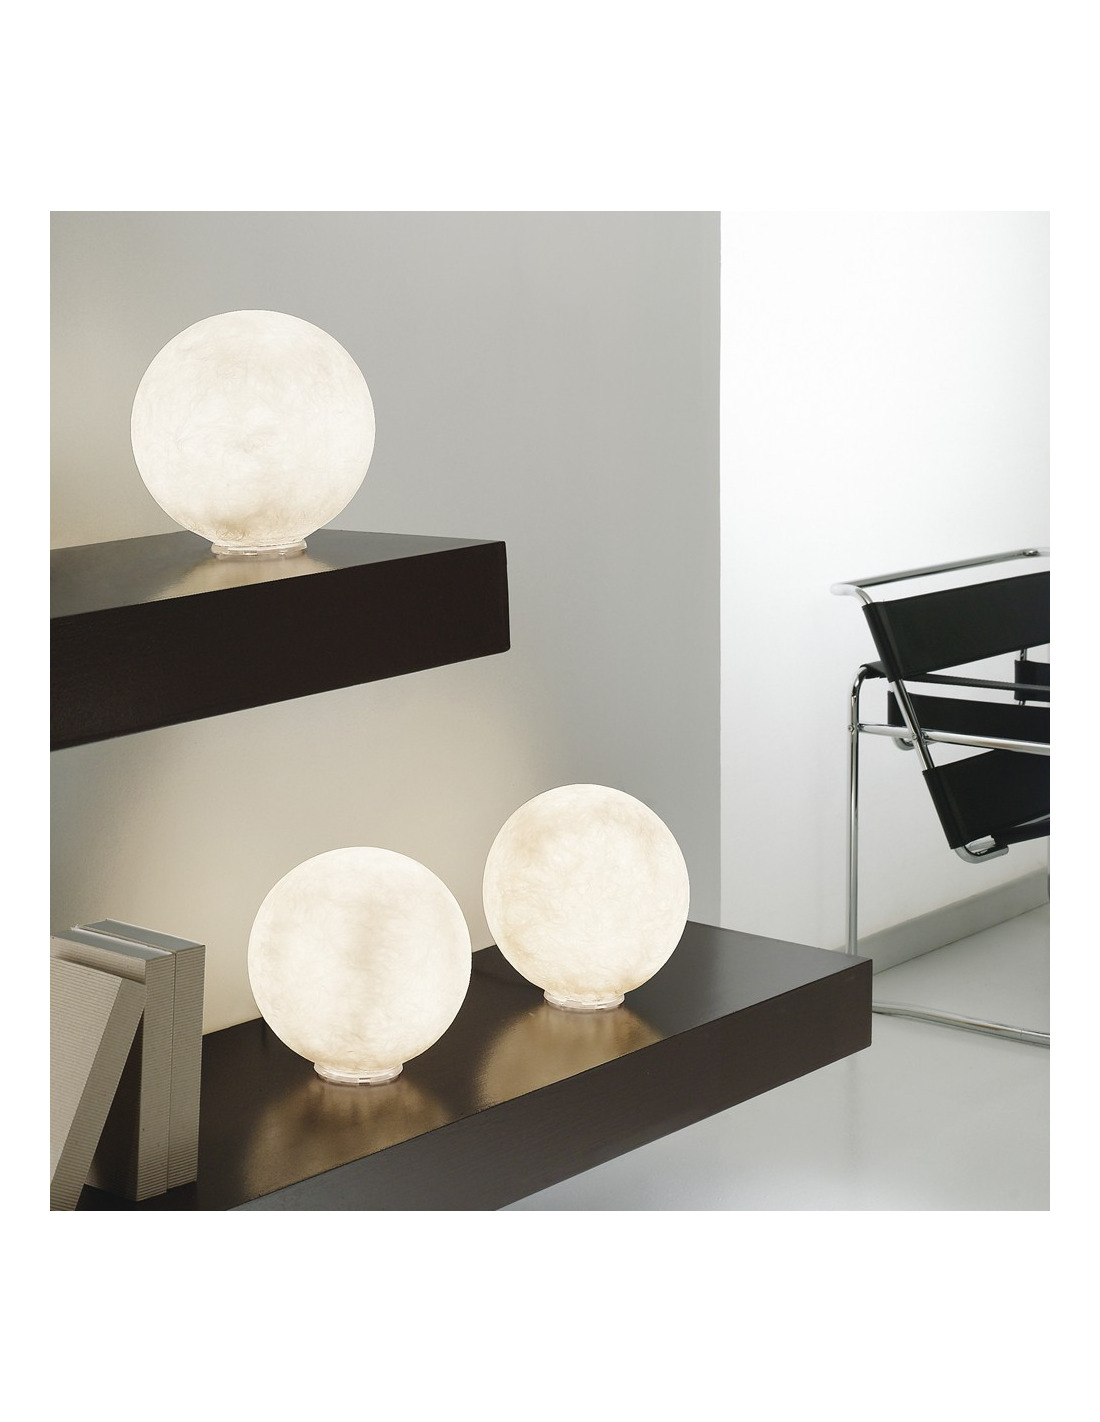 lampe poser petite lune au design original et moderne t moon en nebulite otoko. Black Bedroom Furniture Sets. Home Design Ideas